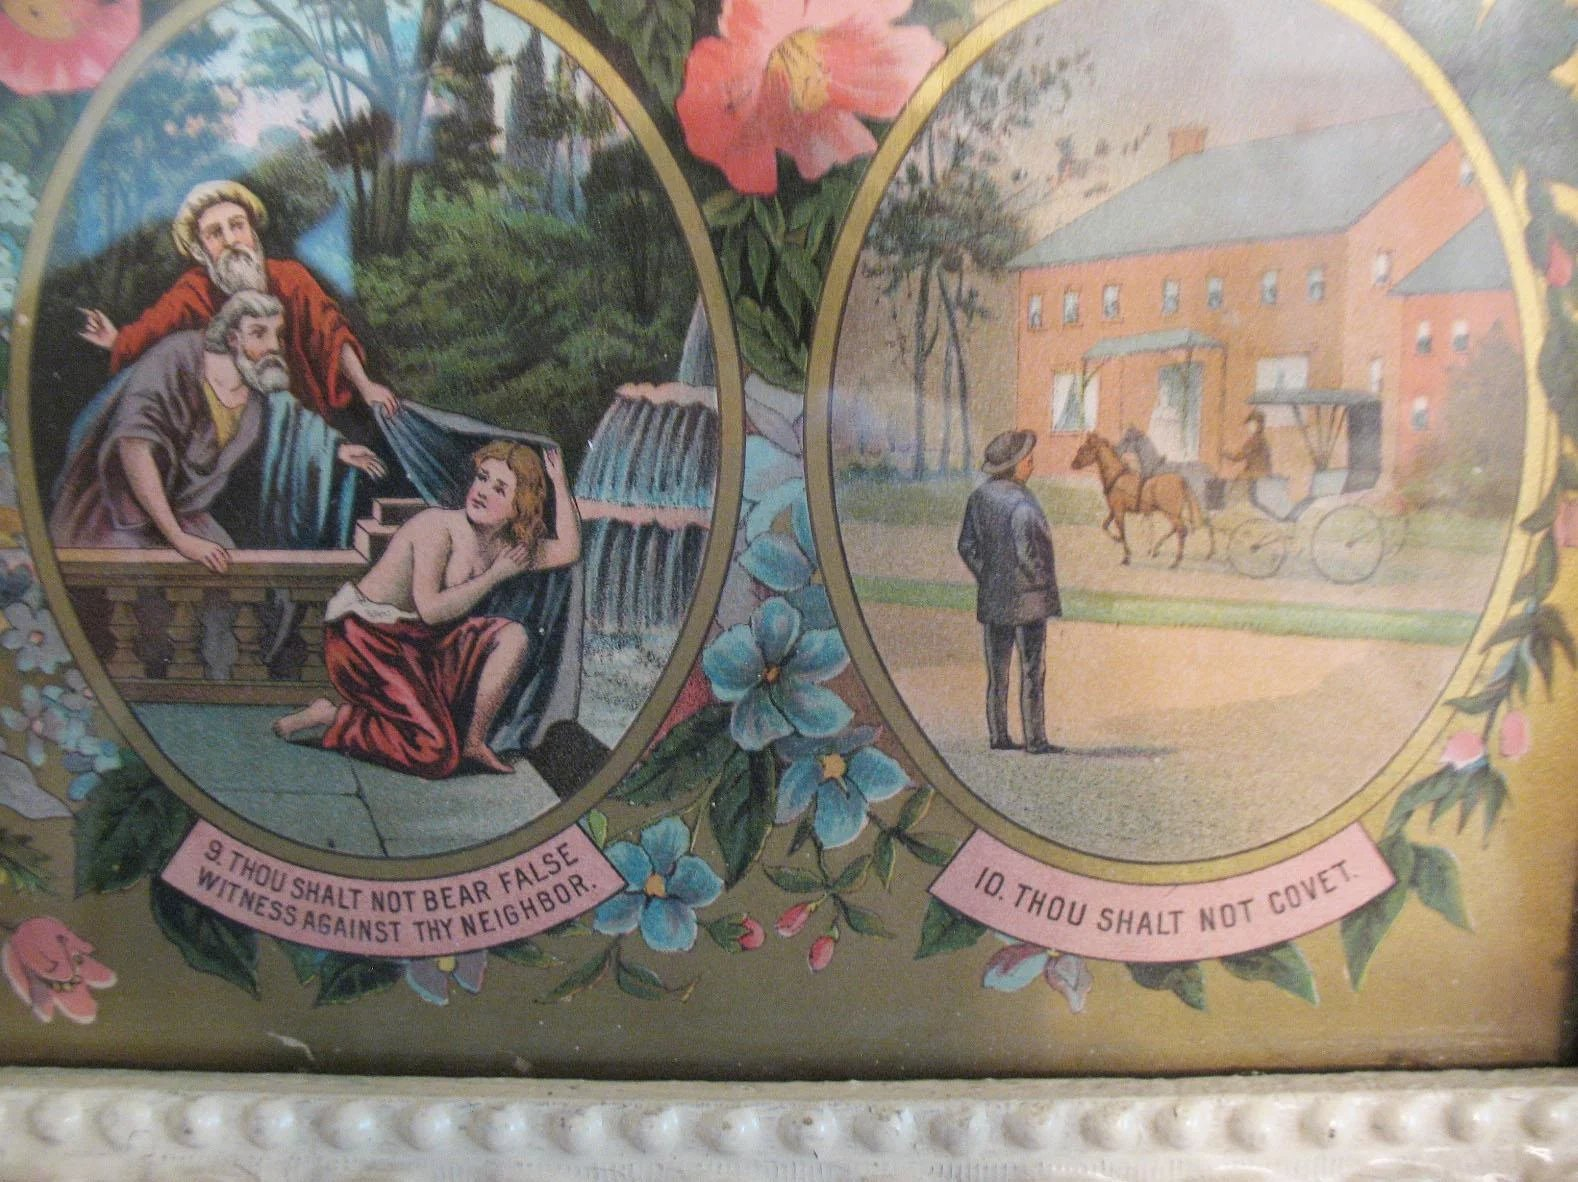 Vintage Ten Commandments Lithograph Late 1800s Early 1900s